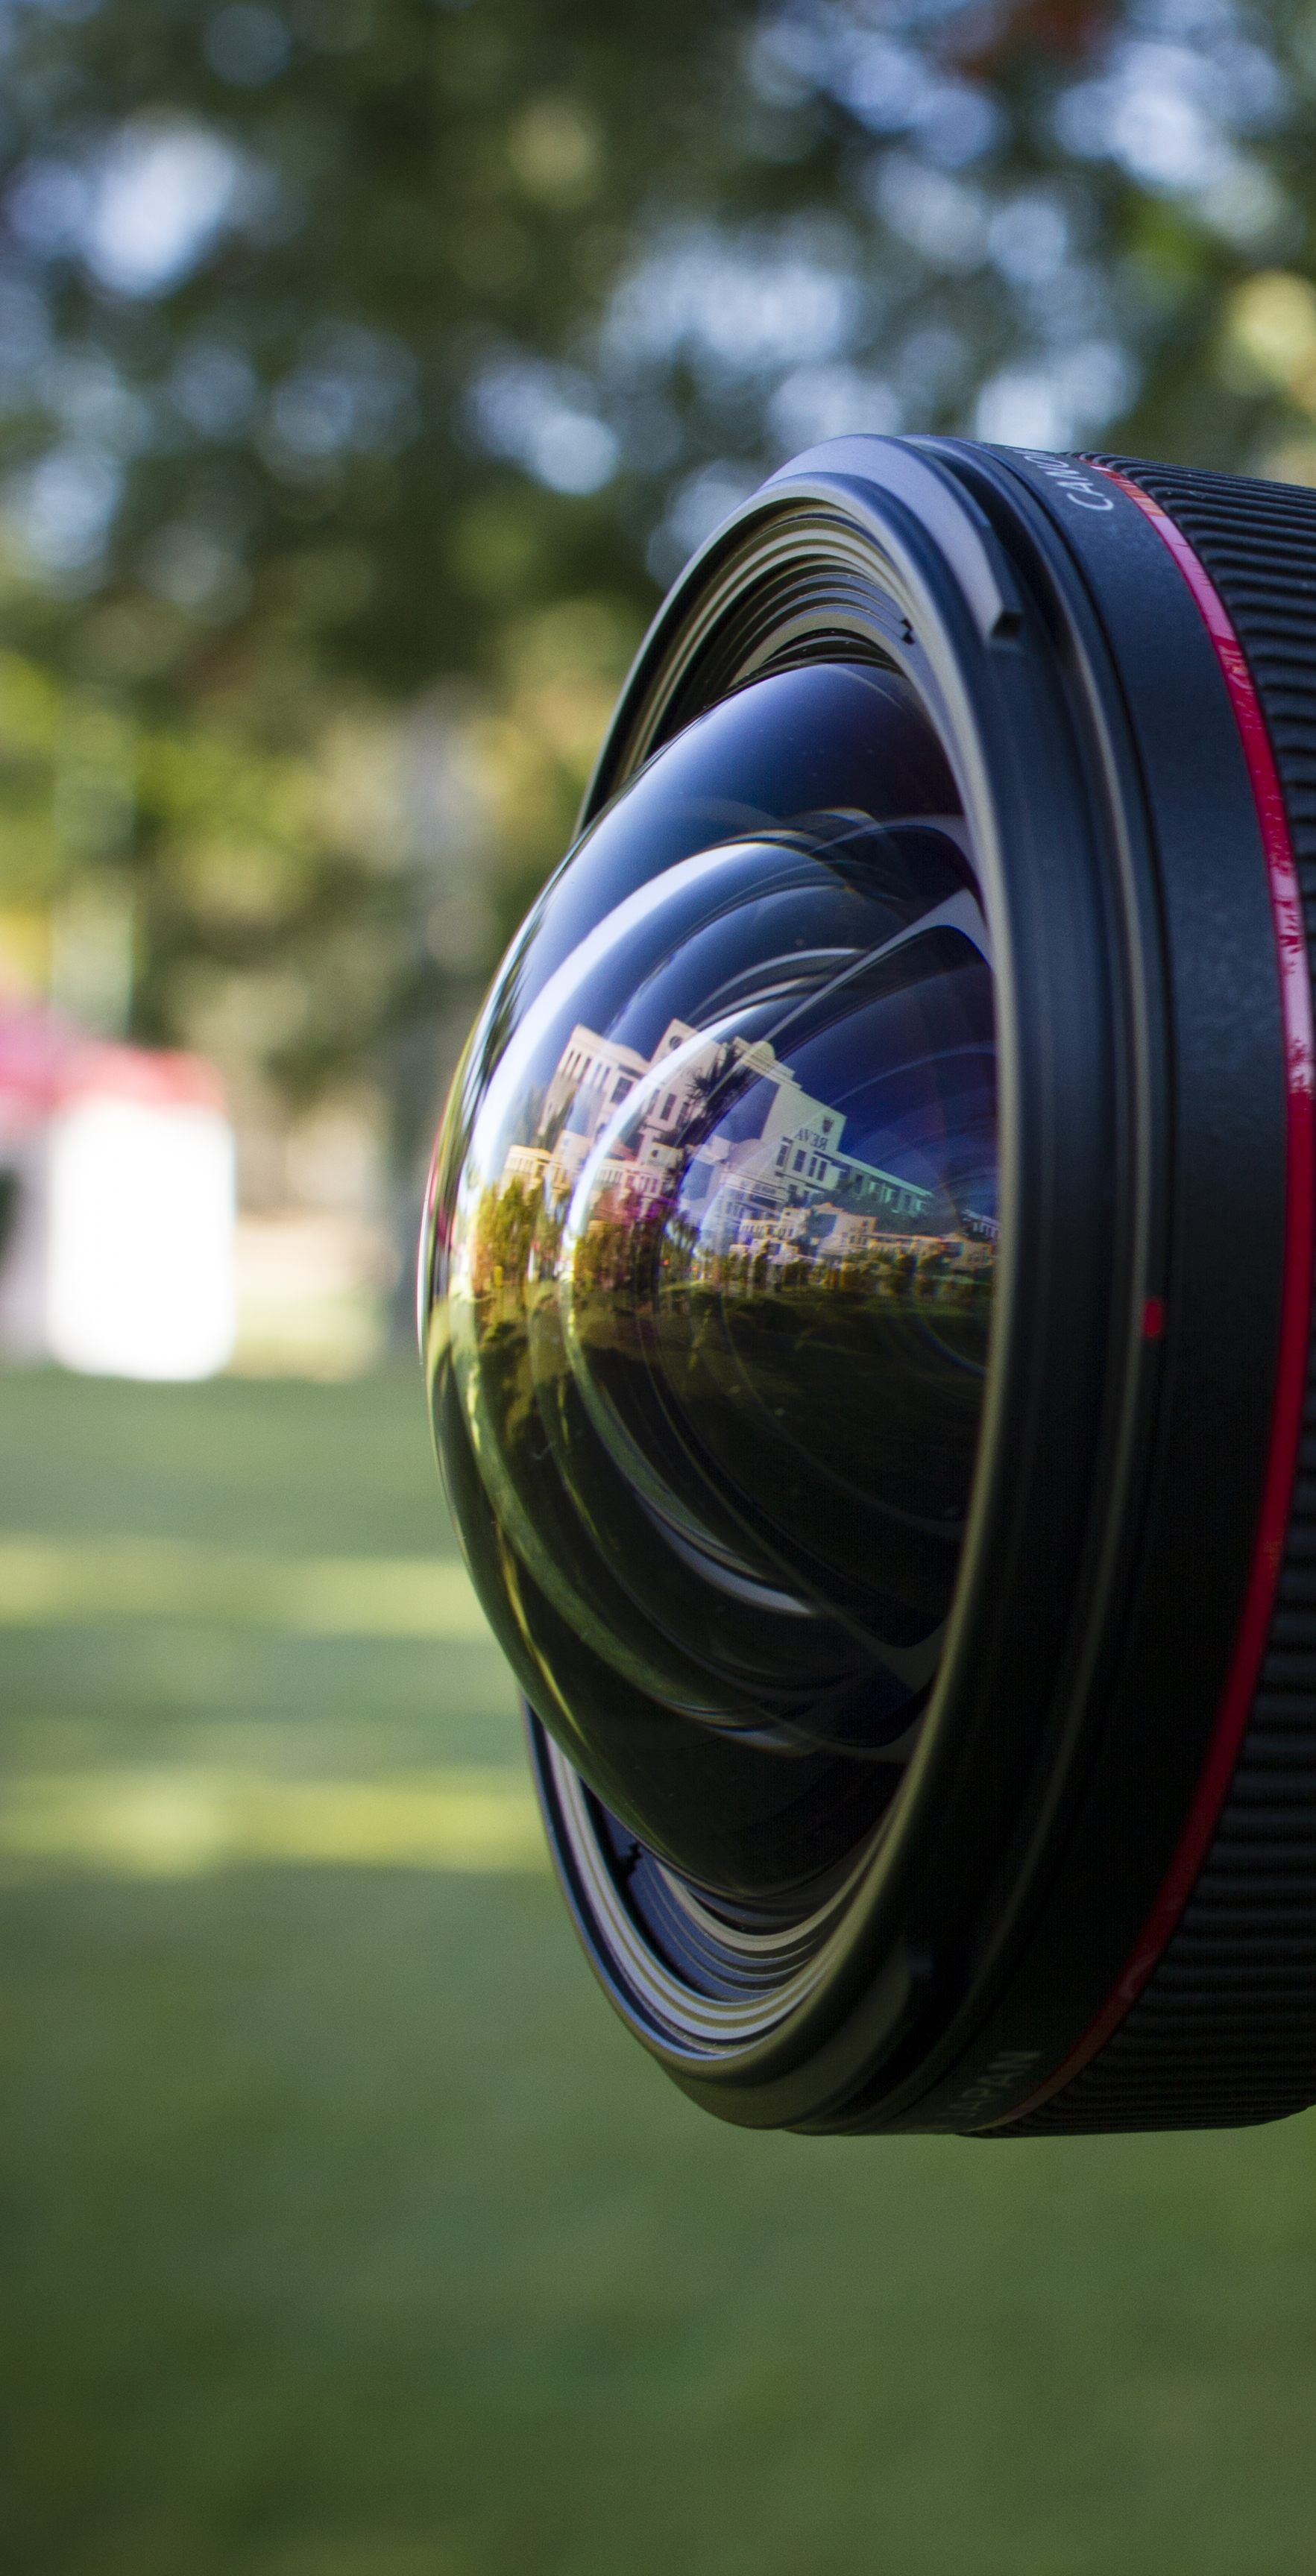 The bulging front element of the Canon TS-E 17mm f/4. This photograph of shot during an Architectural Photo Shoot conducted by Jude Lazaro in Bangalore, India.